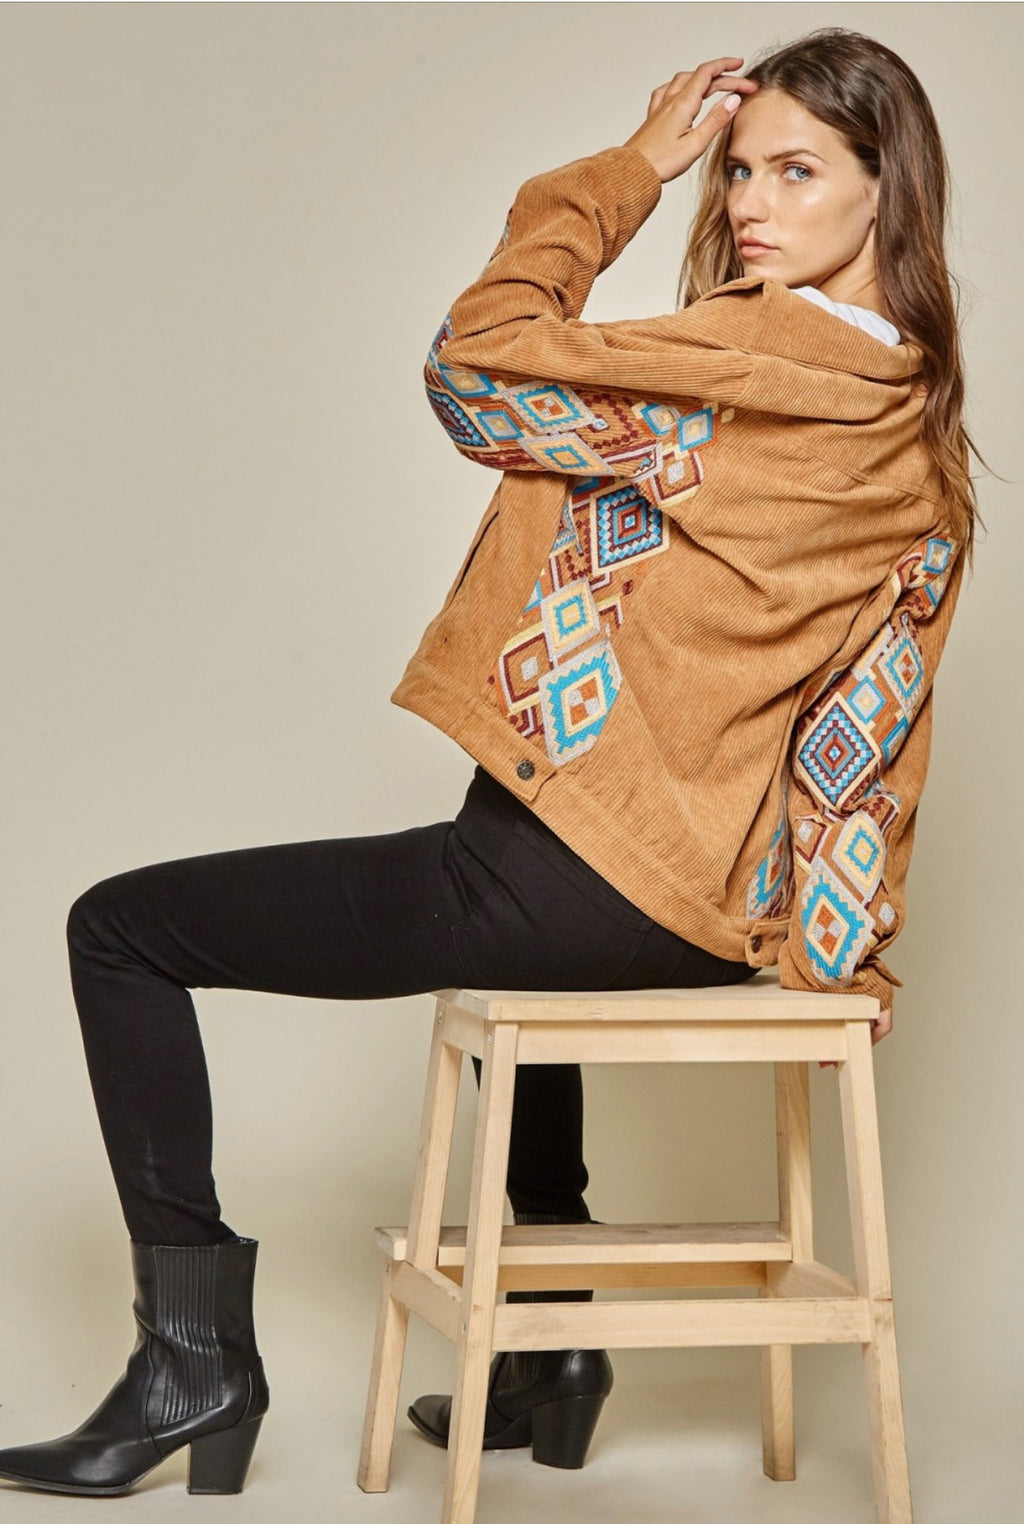 Camel Corduroy Jacket Embroidered Aztex Savanna Jane